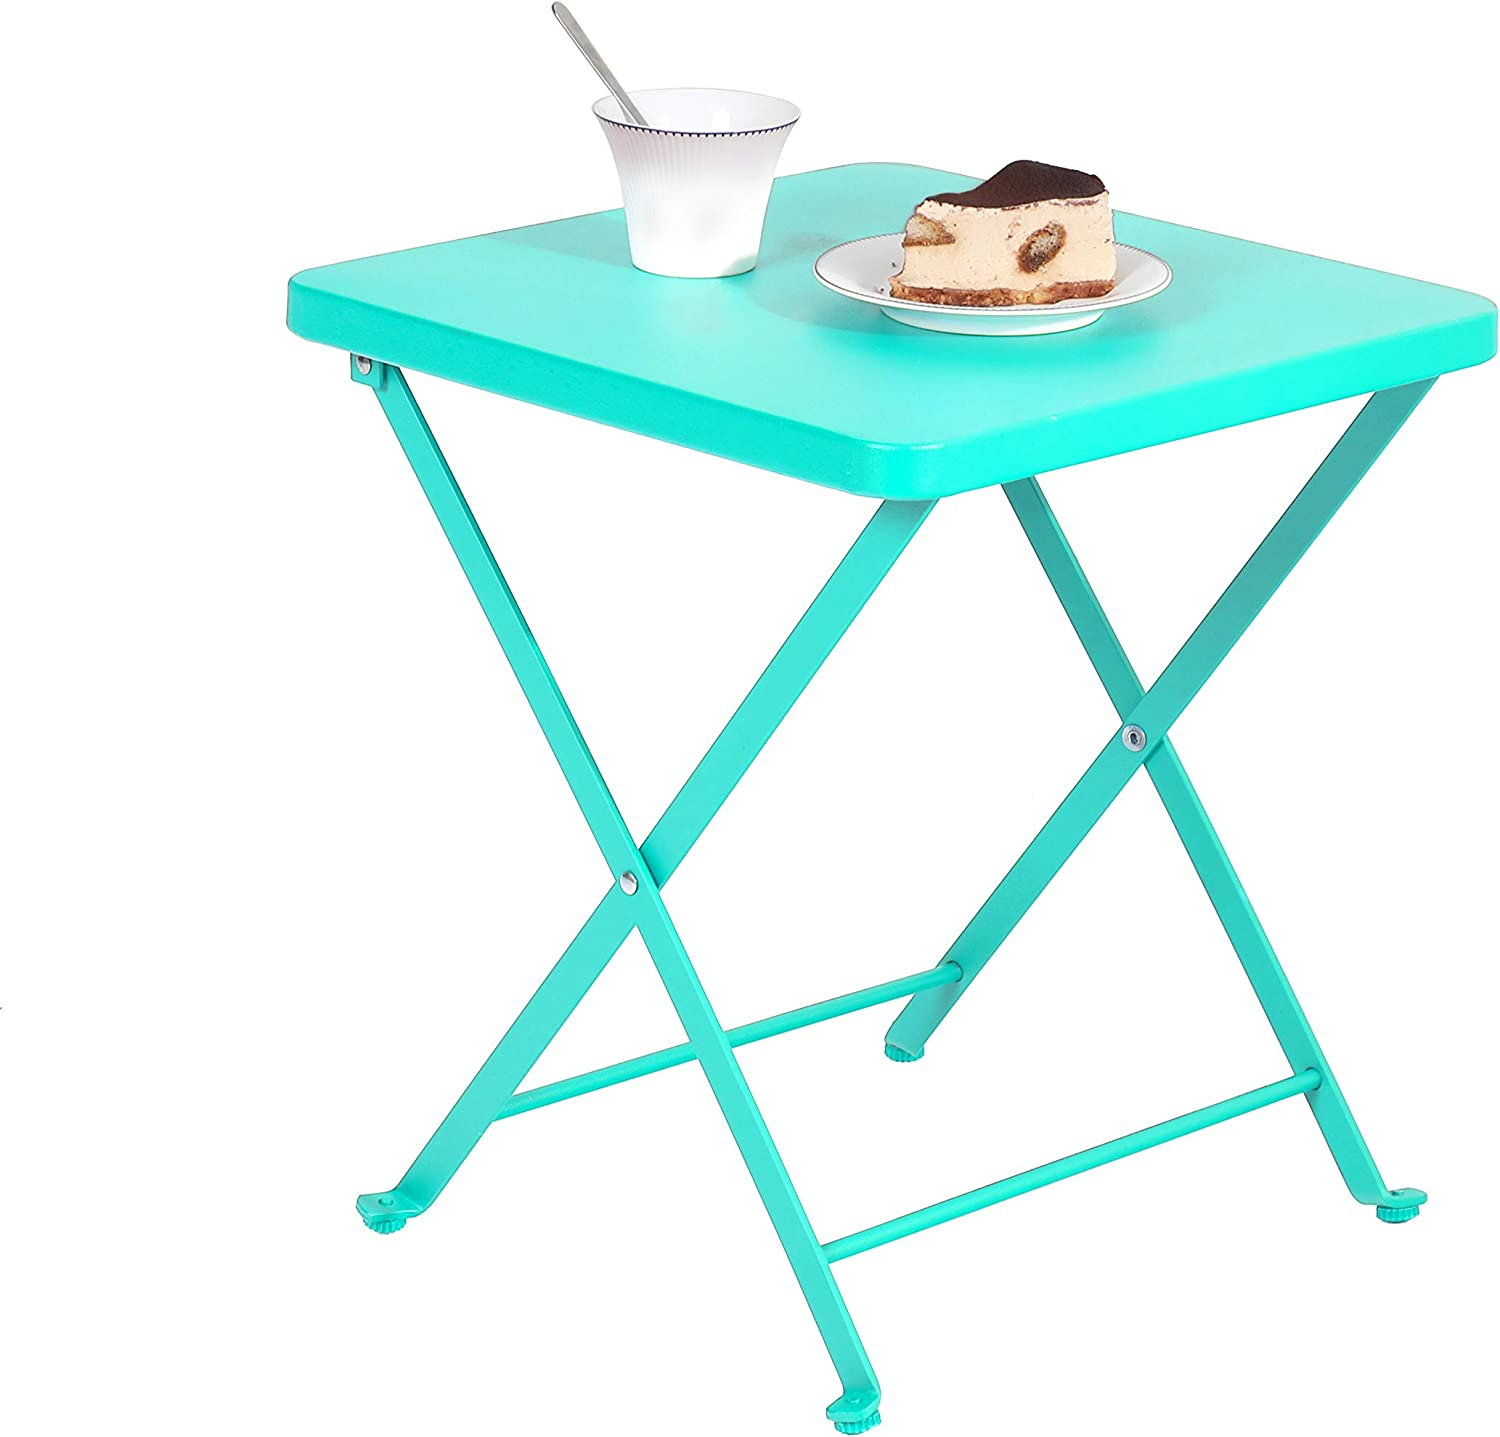 PHI VILLA Folding Patio Side Table Outdoor Steel Coffee Table, Small Patio End Bistro Tables, Turquoise